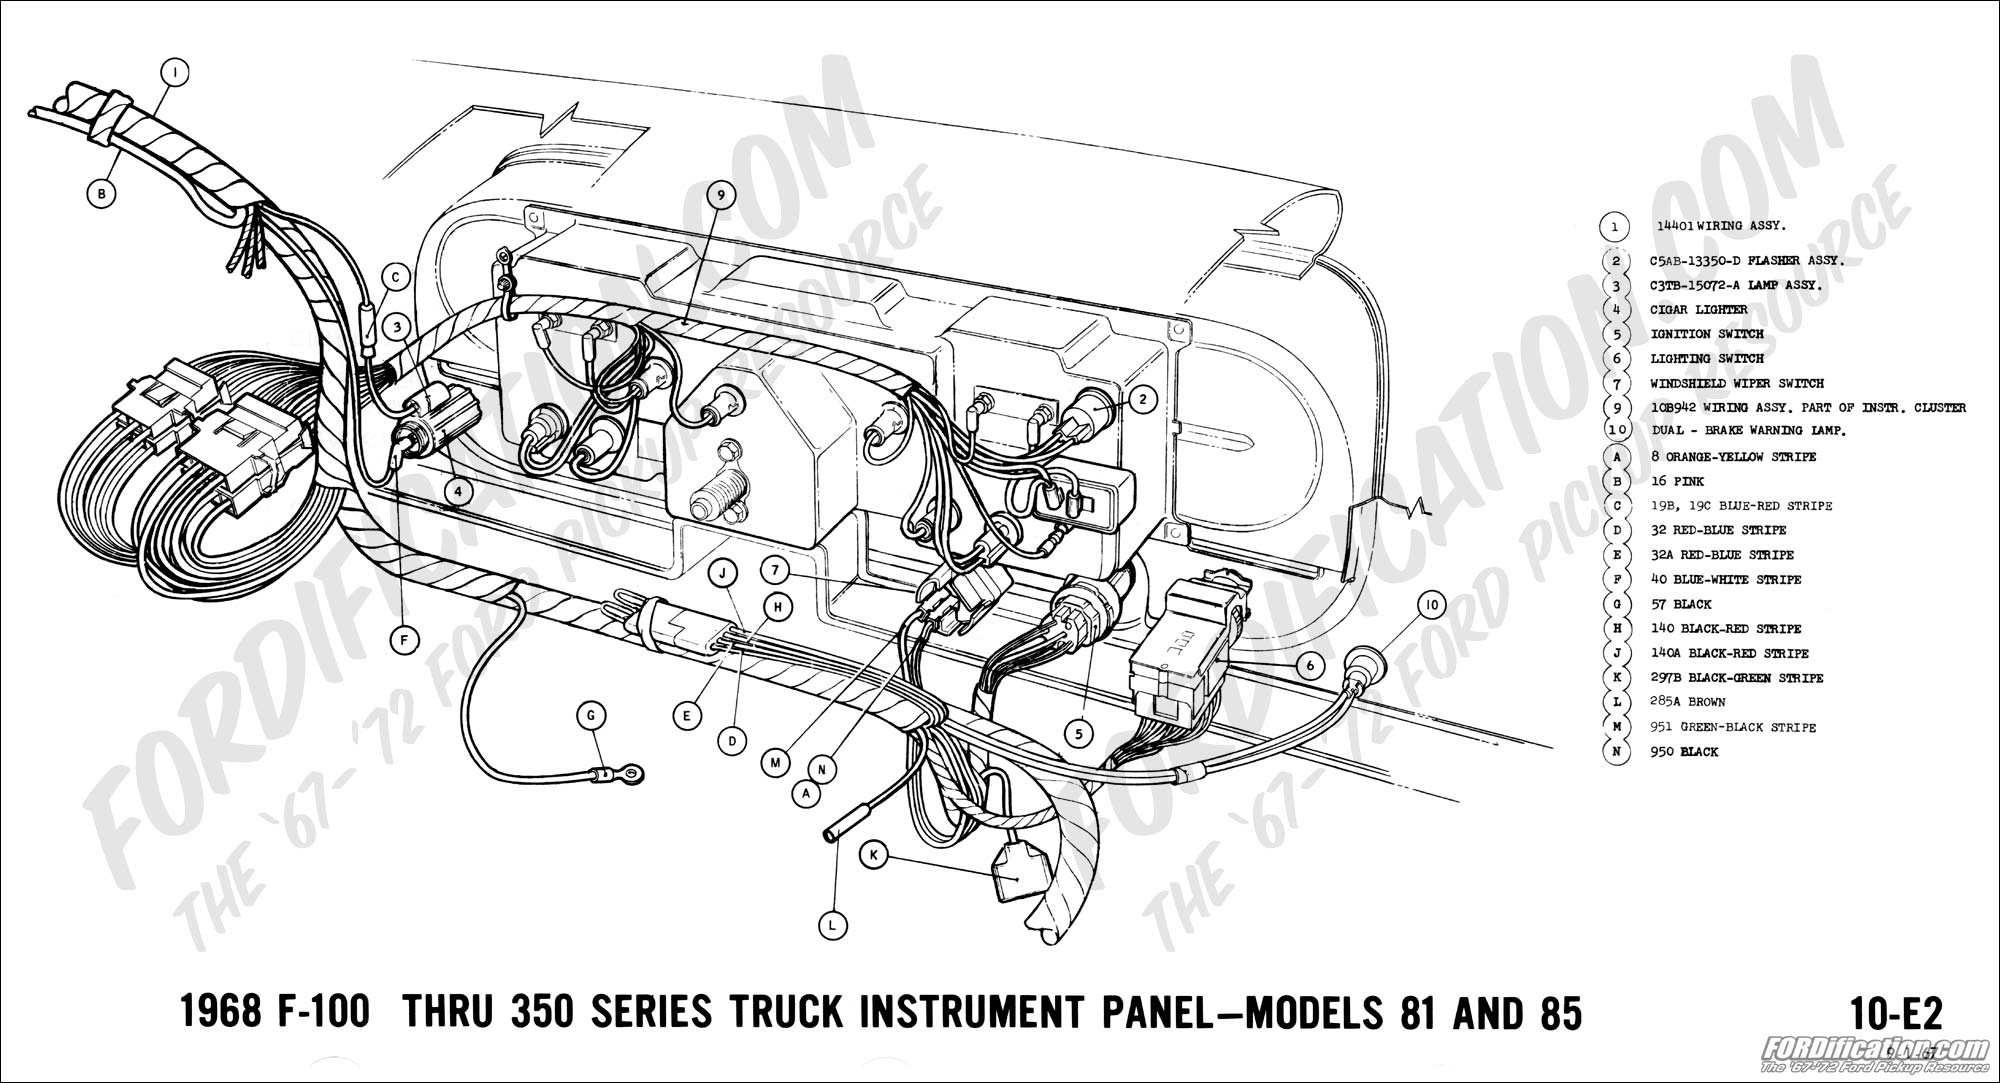 hight resolution of ford truck technical drawings and schematics section h wiring1968 f 100 thru f 350 instrument panel